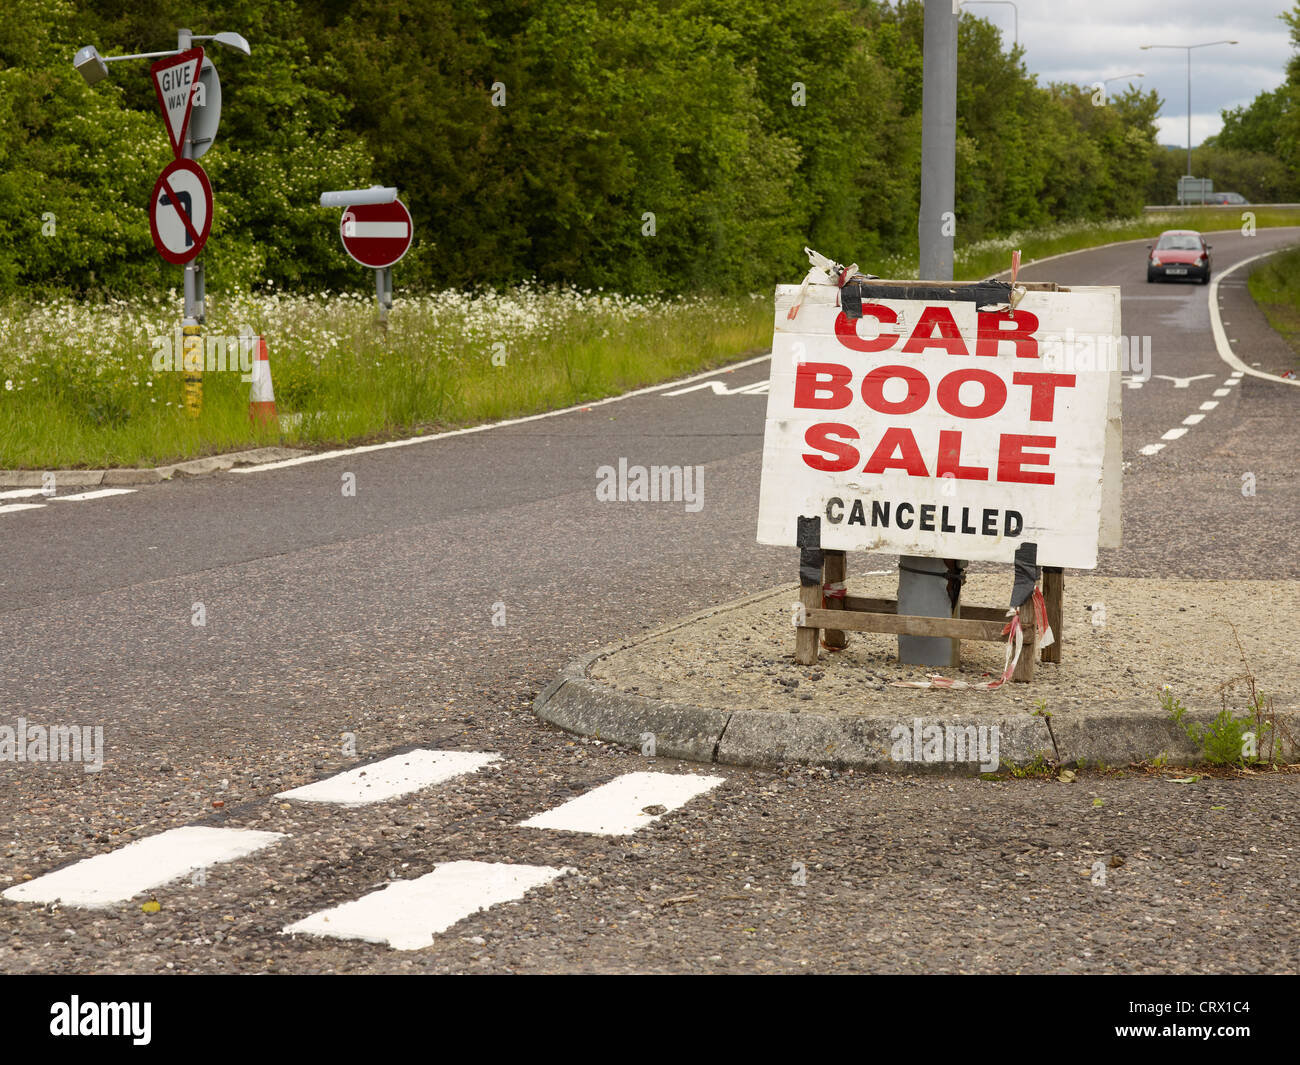 Car Boot sale Cancelled sign, by the side of the road - Stock Image